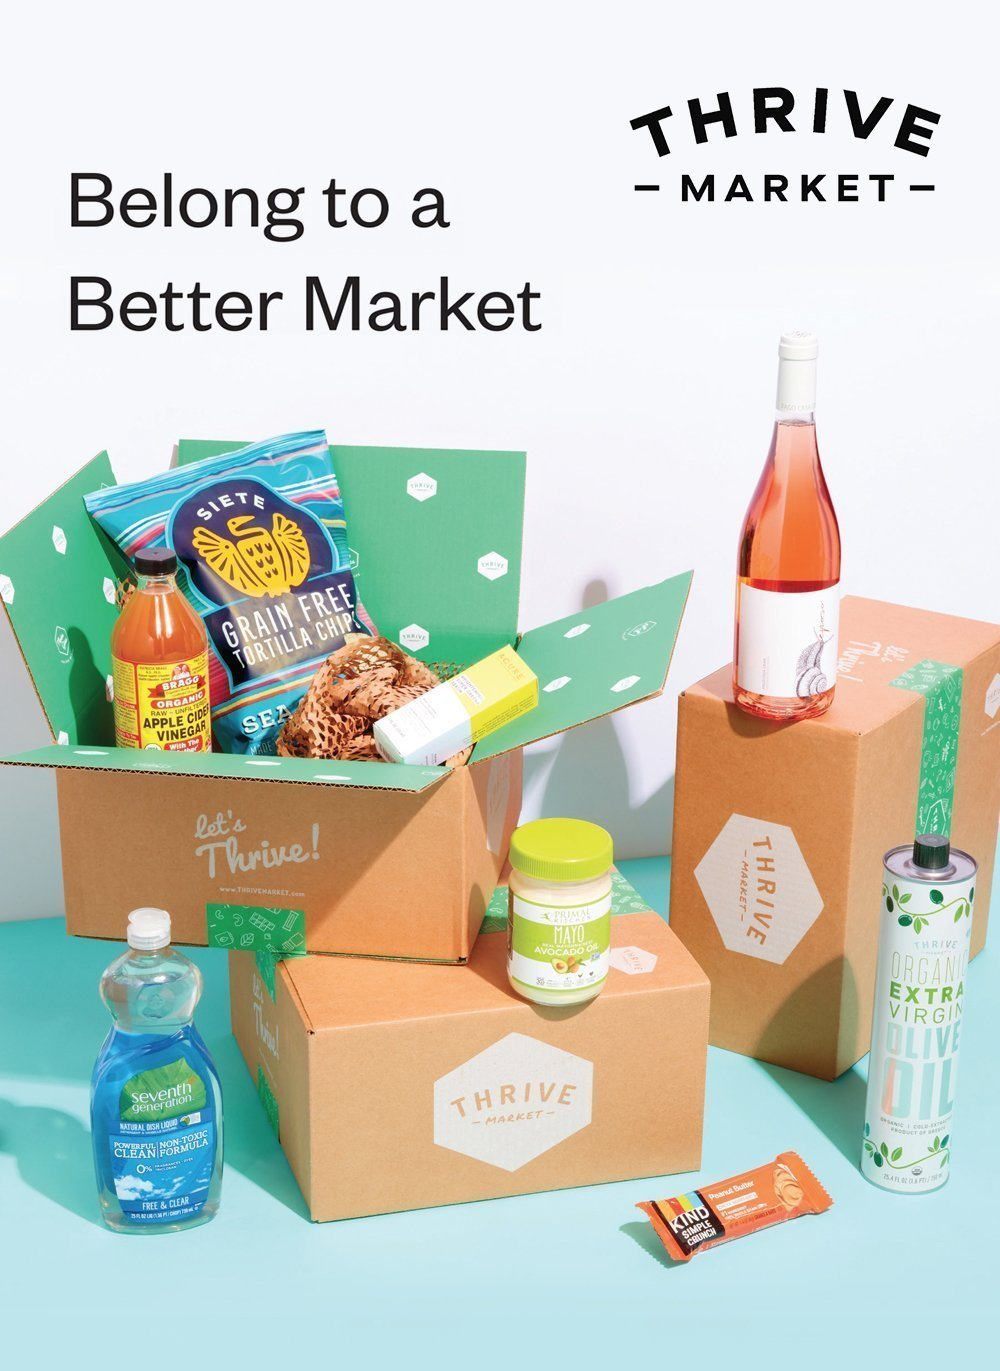 Thrive Market product samples including Siete chips, Kind bars and Seventh Generation soap for ingredient links